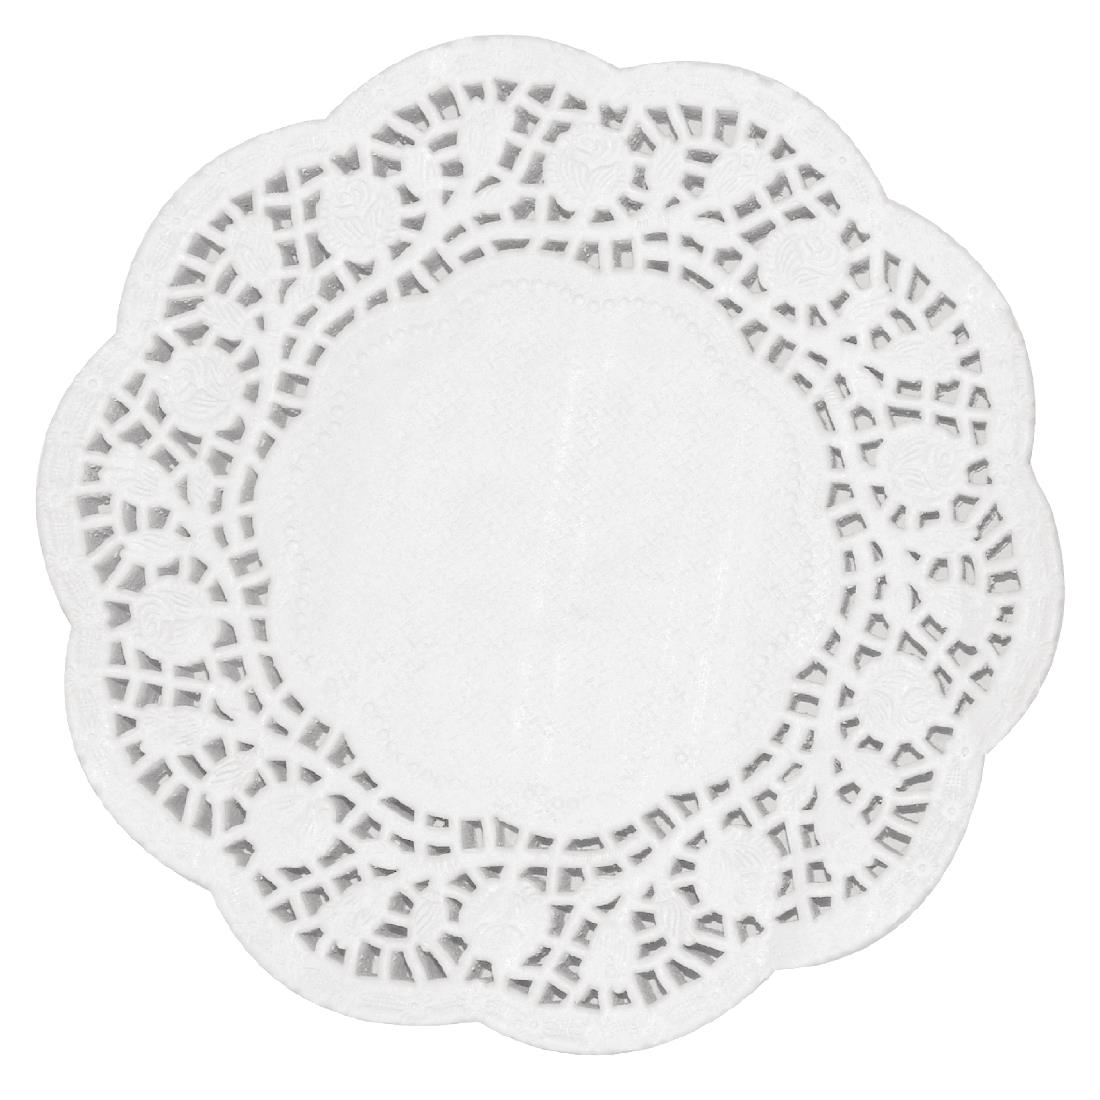 Image of Fiesta Round Paper Doilies 300mm (Pack of 250) Pack of 250